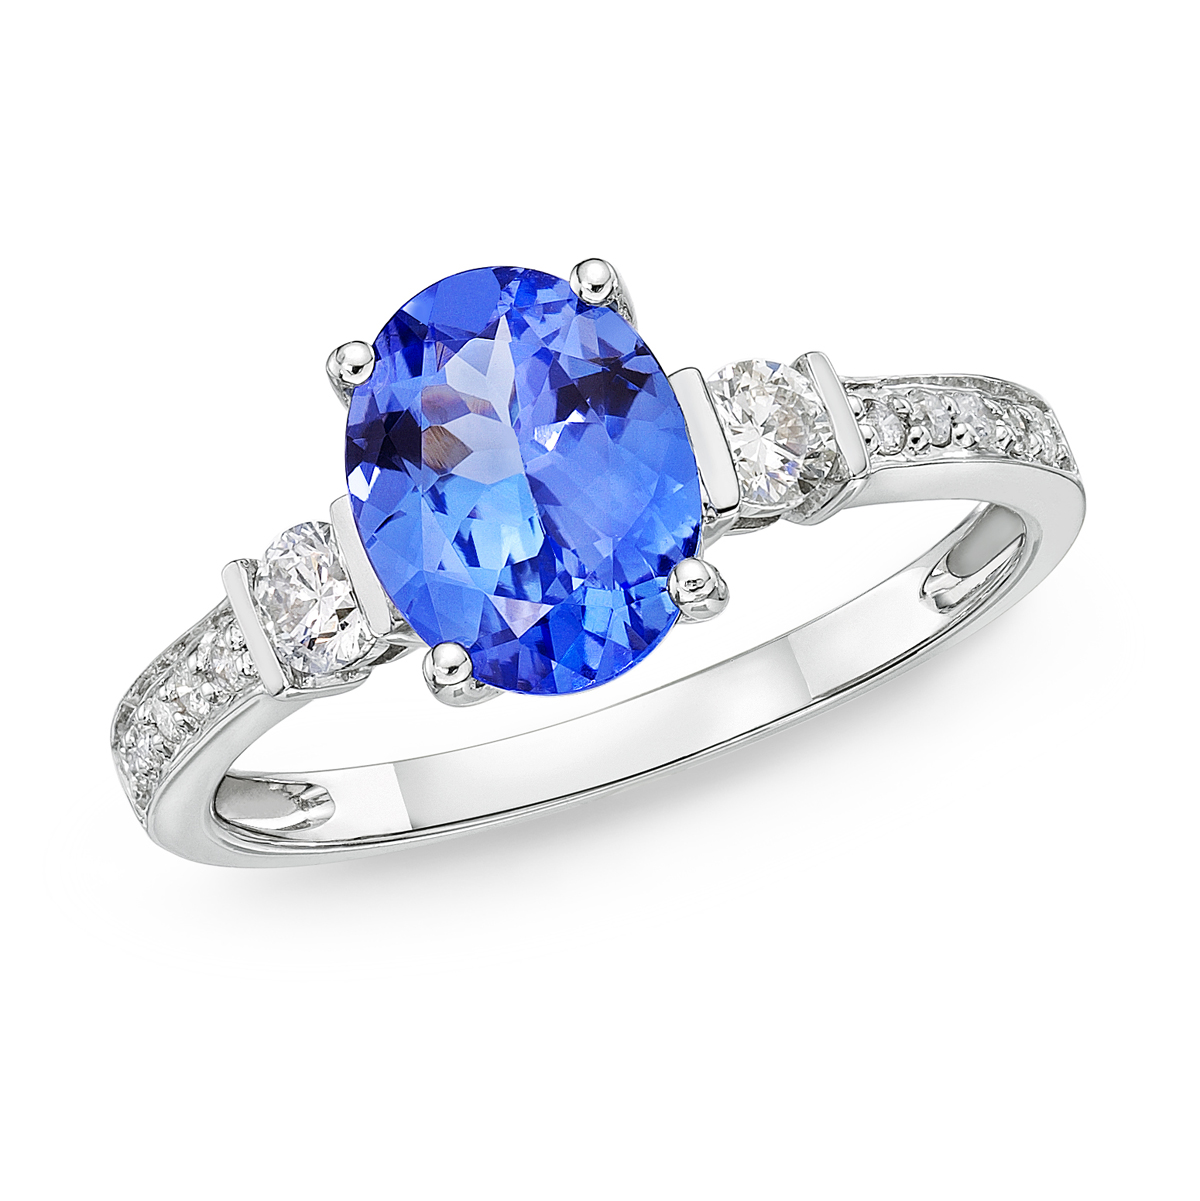 Tanzanite Rings The Ultimate Choice Of Native Americans